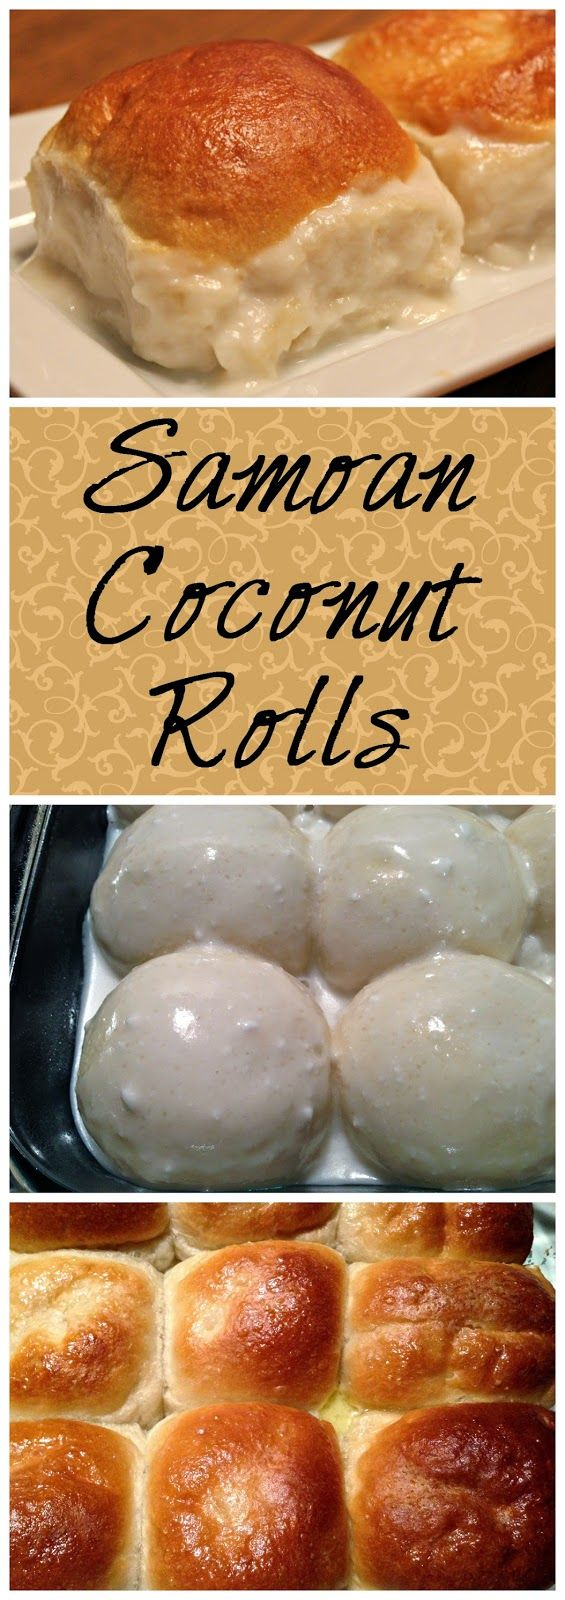 Samoan Coconut Rolls (Pani Popo) | These sweet coconut rolls are absolutely delicious! Perfect for Easter too.